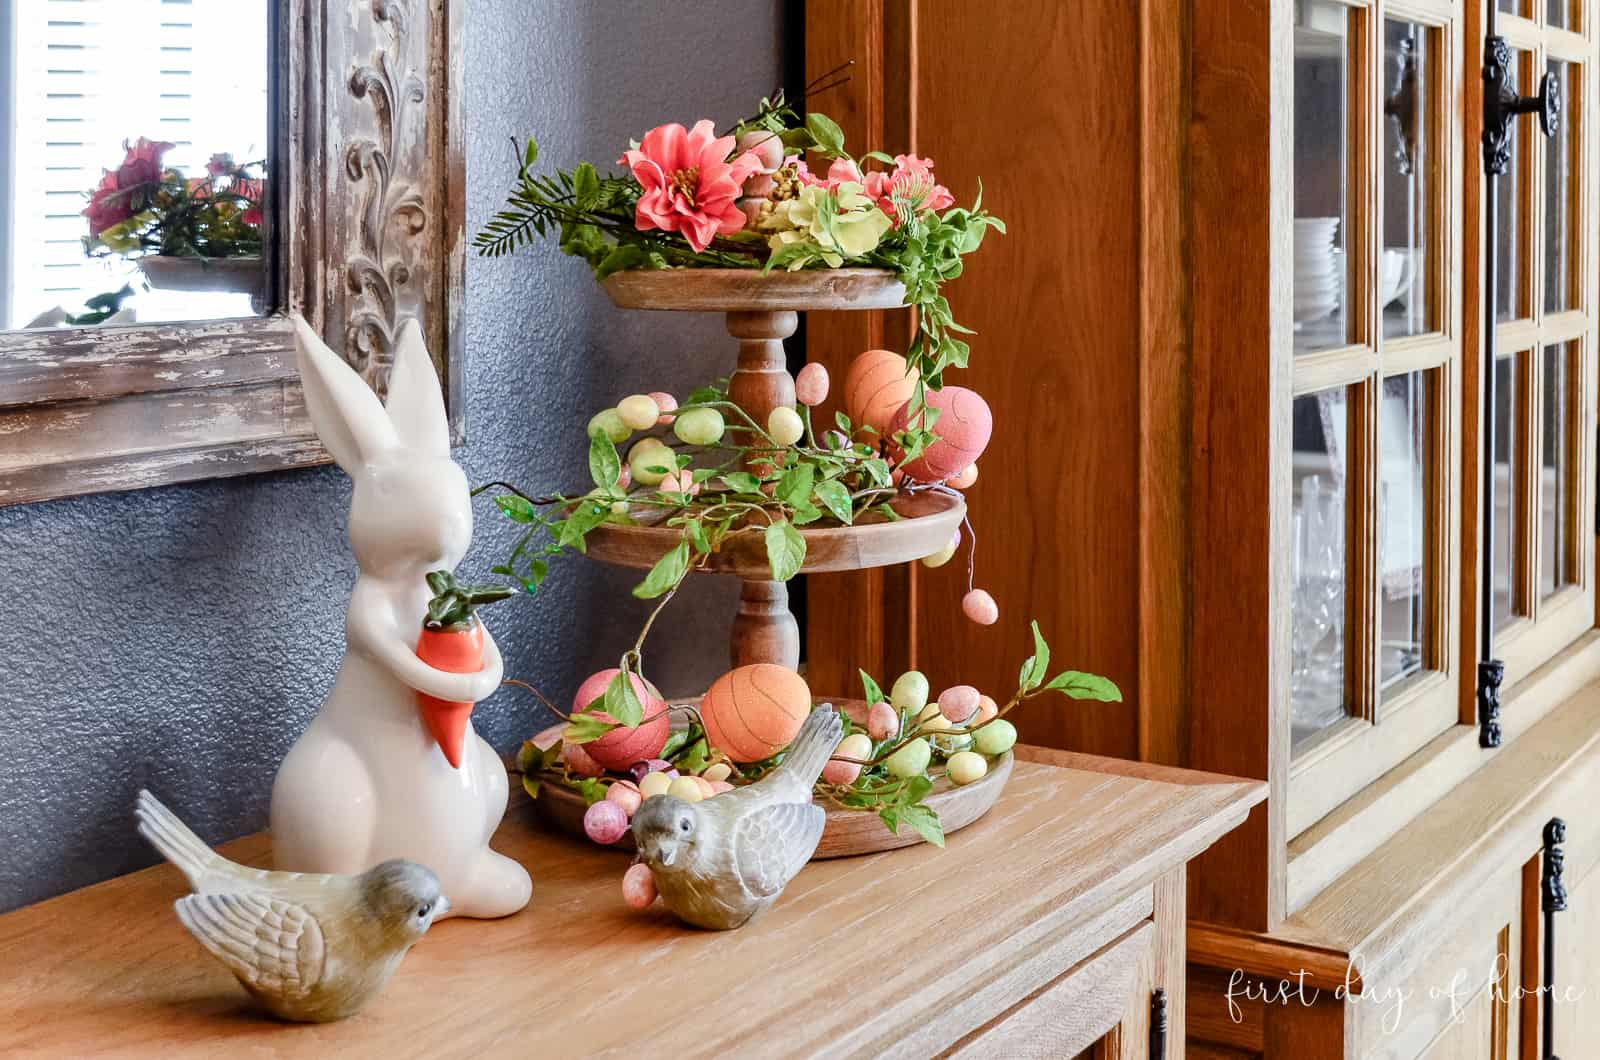 Ceramic bunny holding carrot next to three tiered tray covered with Easter egg decor and greenery